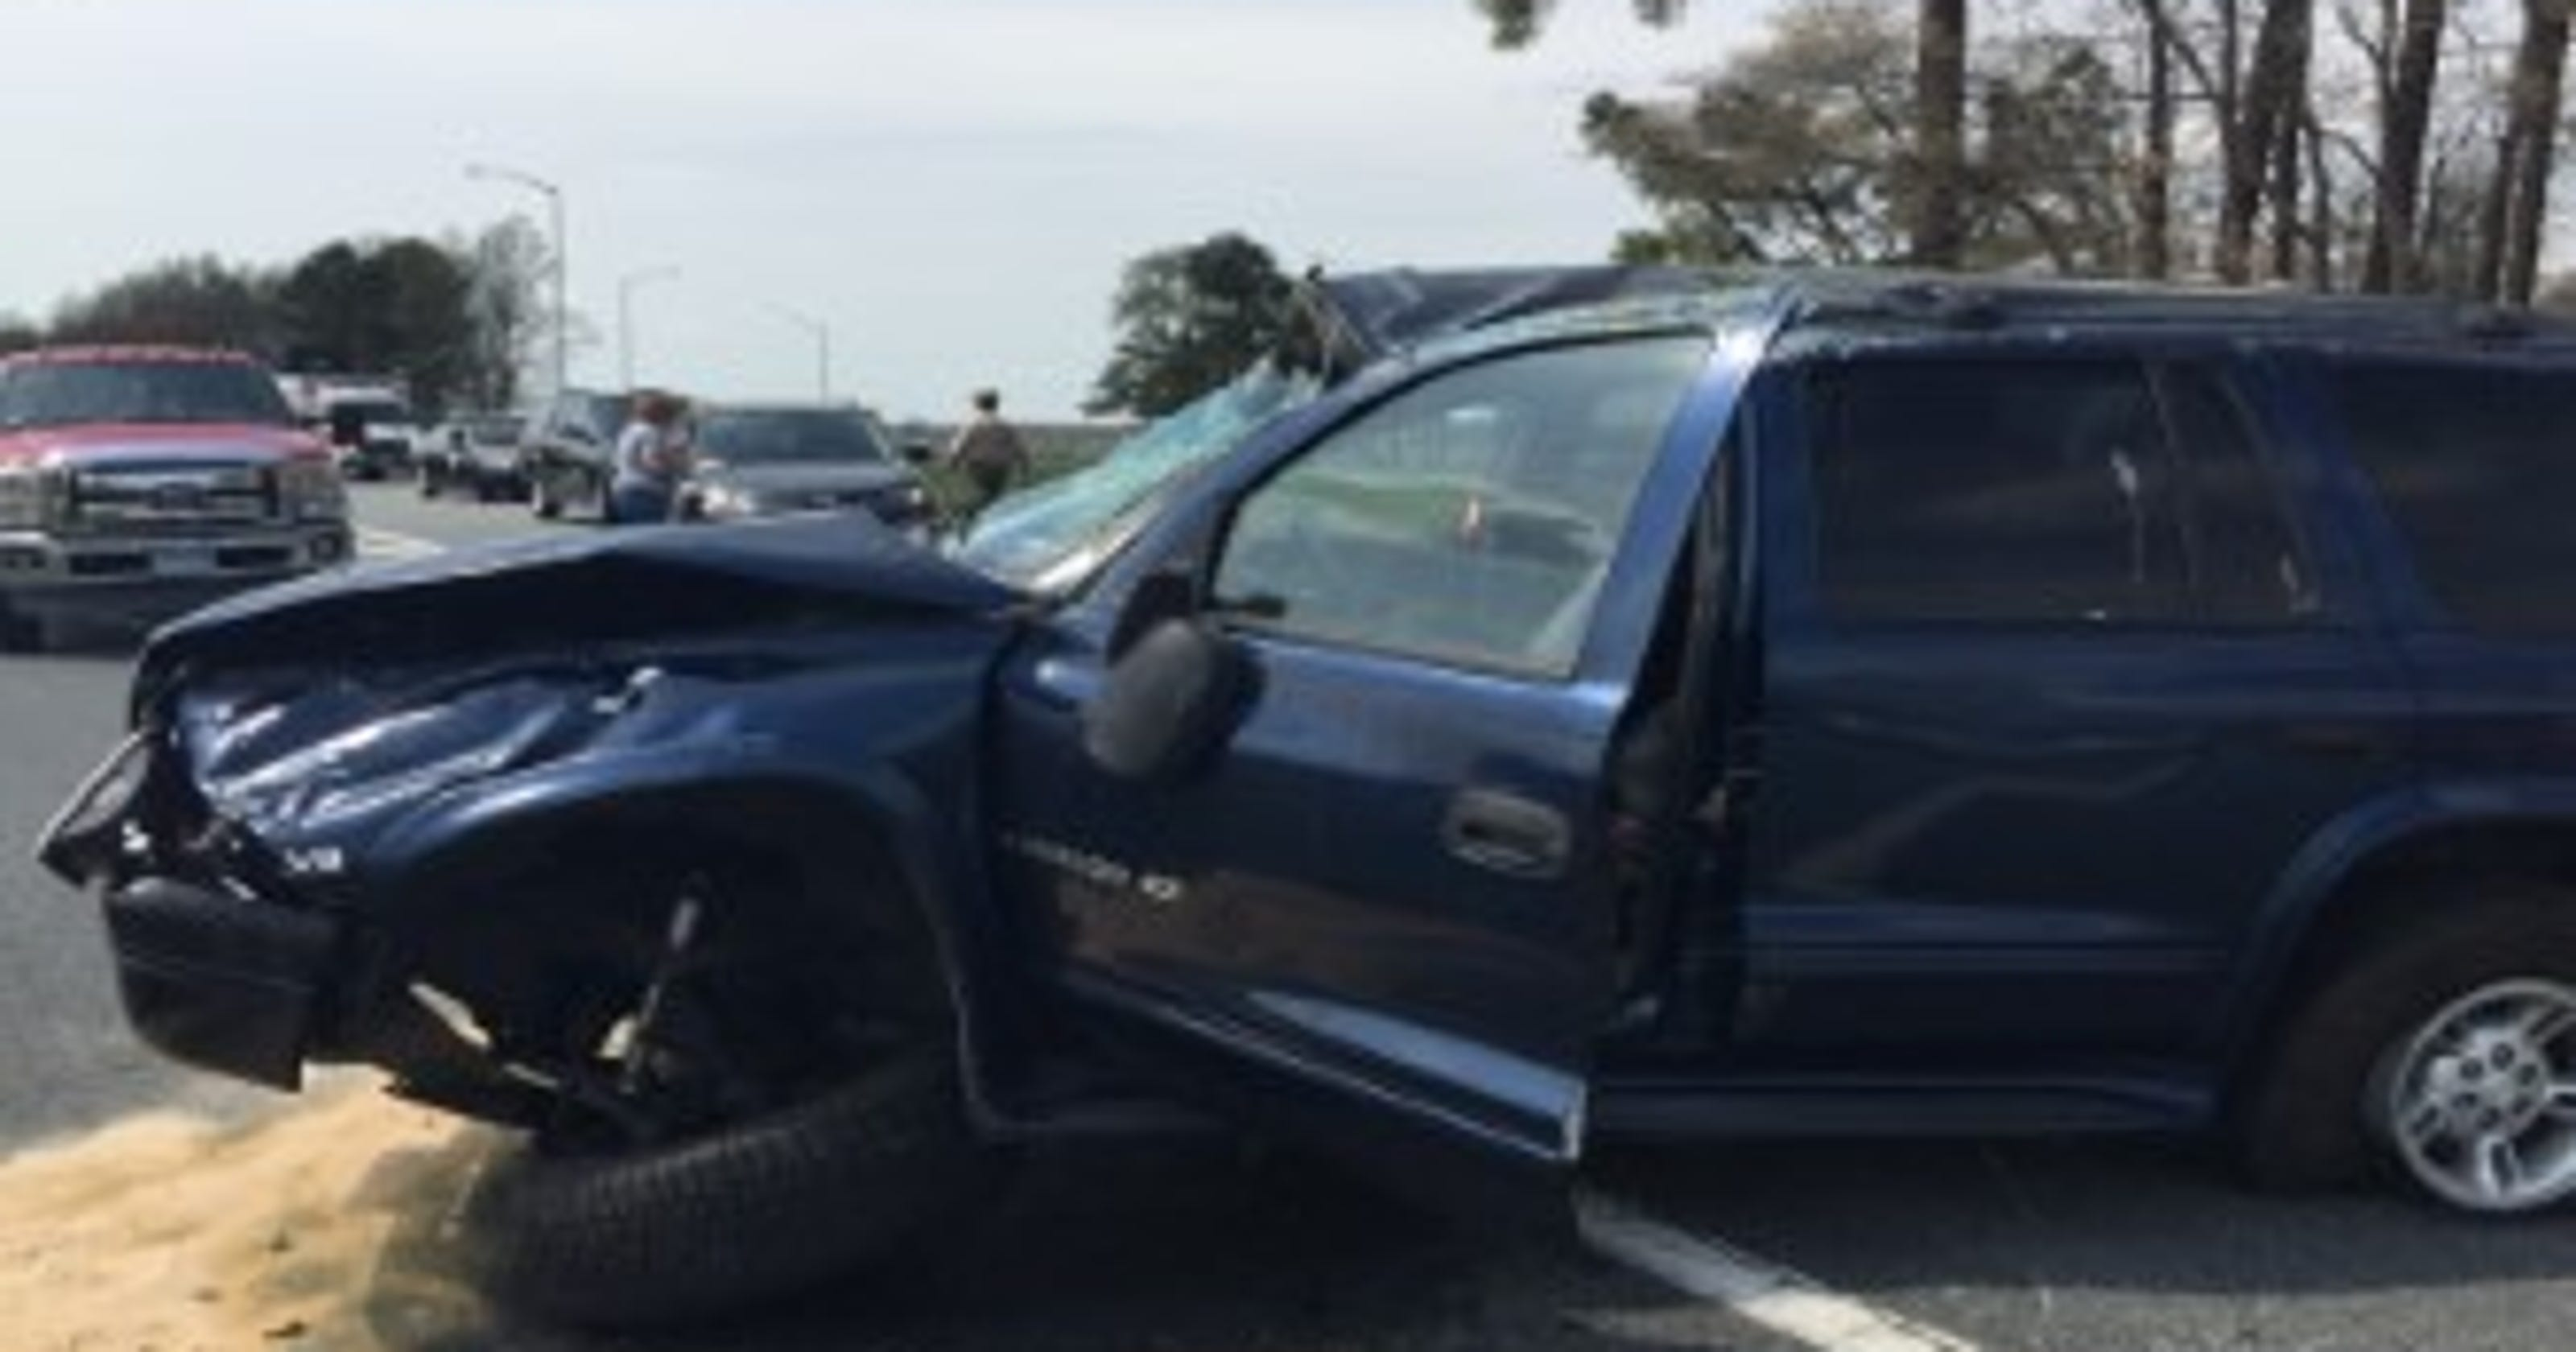 One injured in Route 50 crash